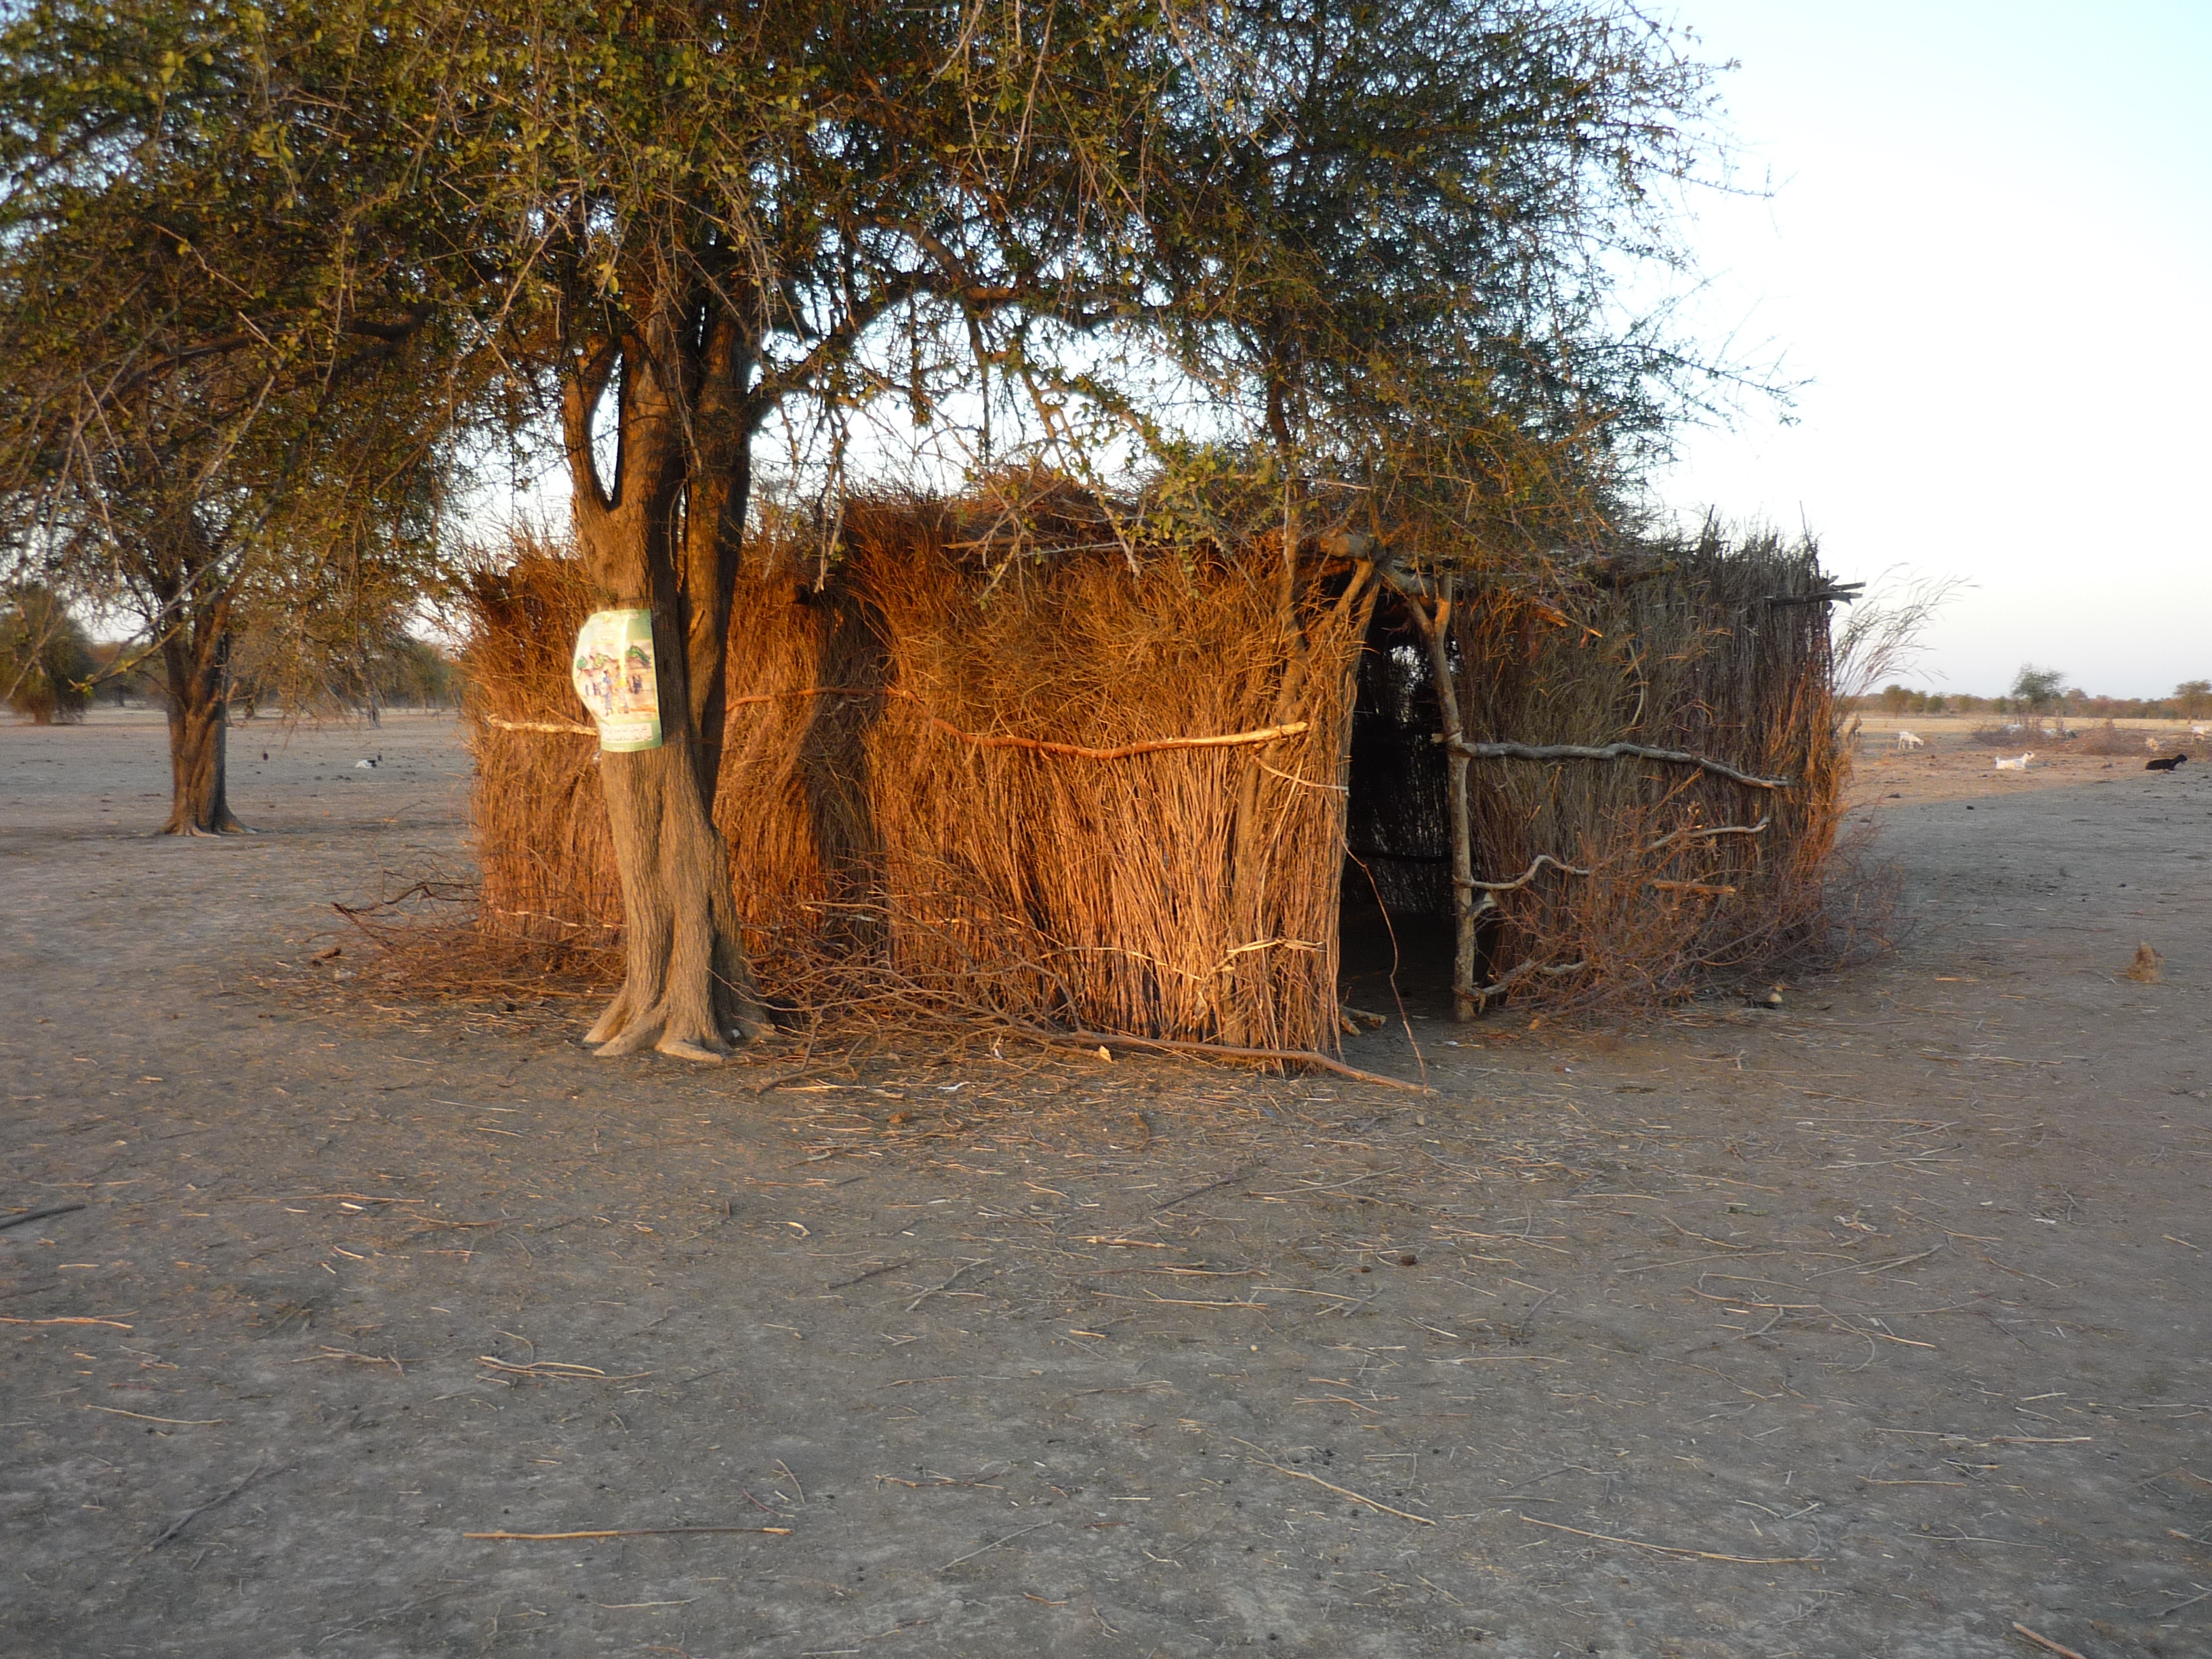 The first school building, permanent nomadic village, Central Chad